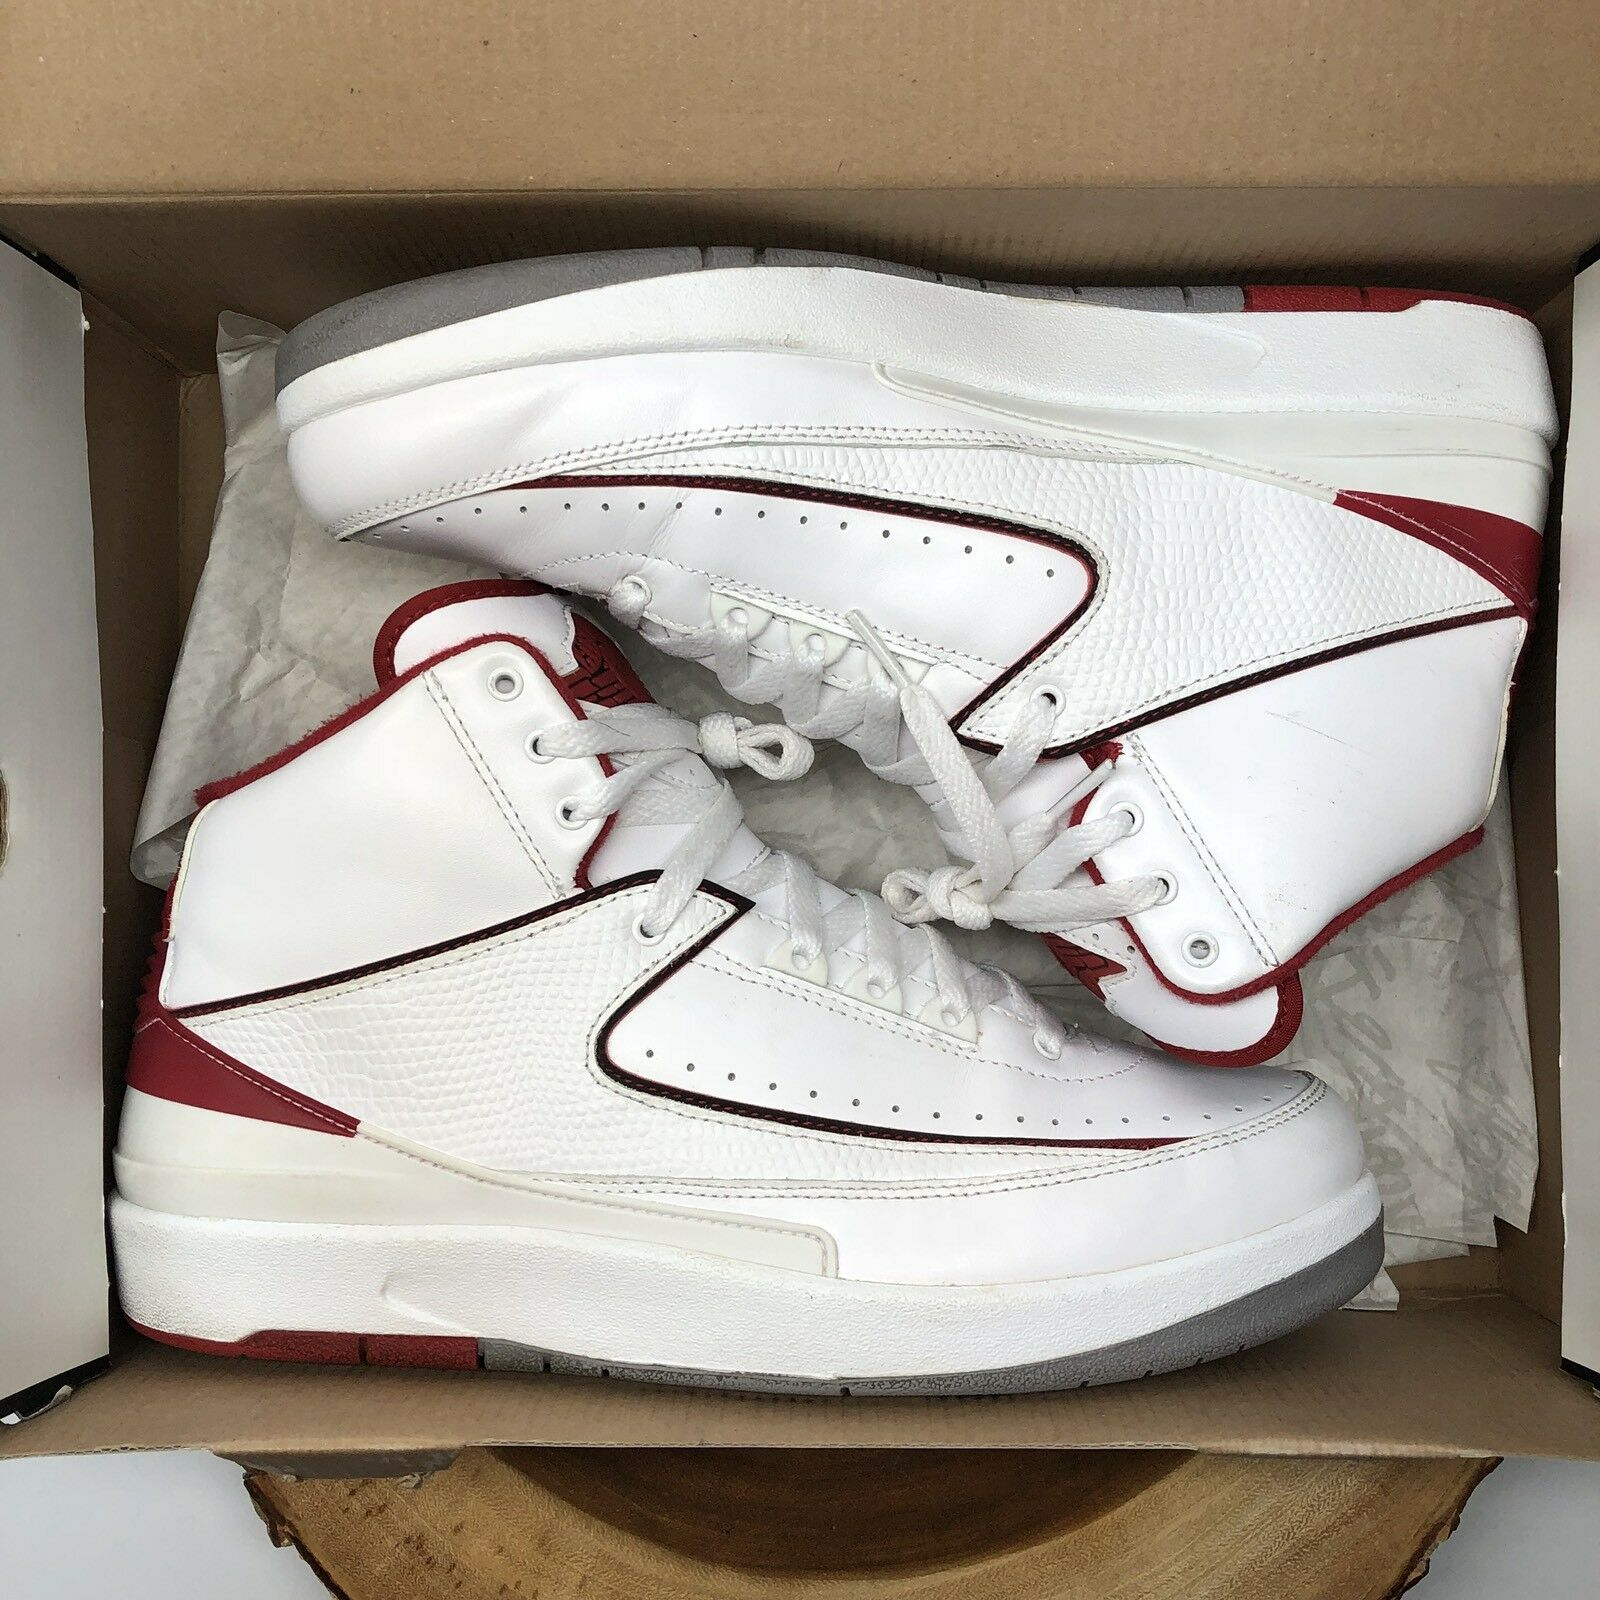 Nike Air Jordan Retro II White Red Chicago Bulls 385475 102 Comfortable The latest discount shoes for men and women